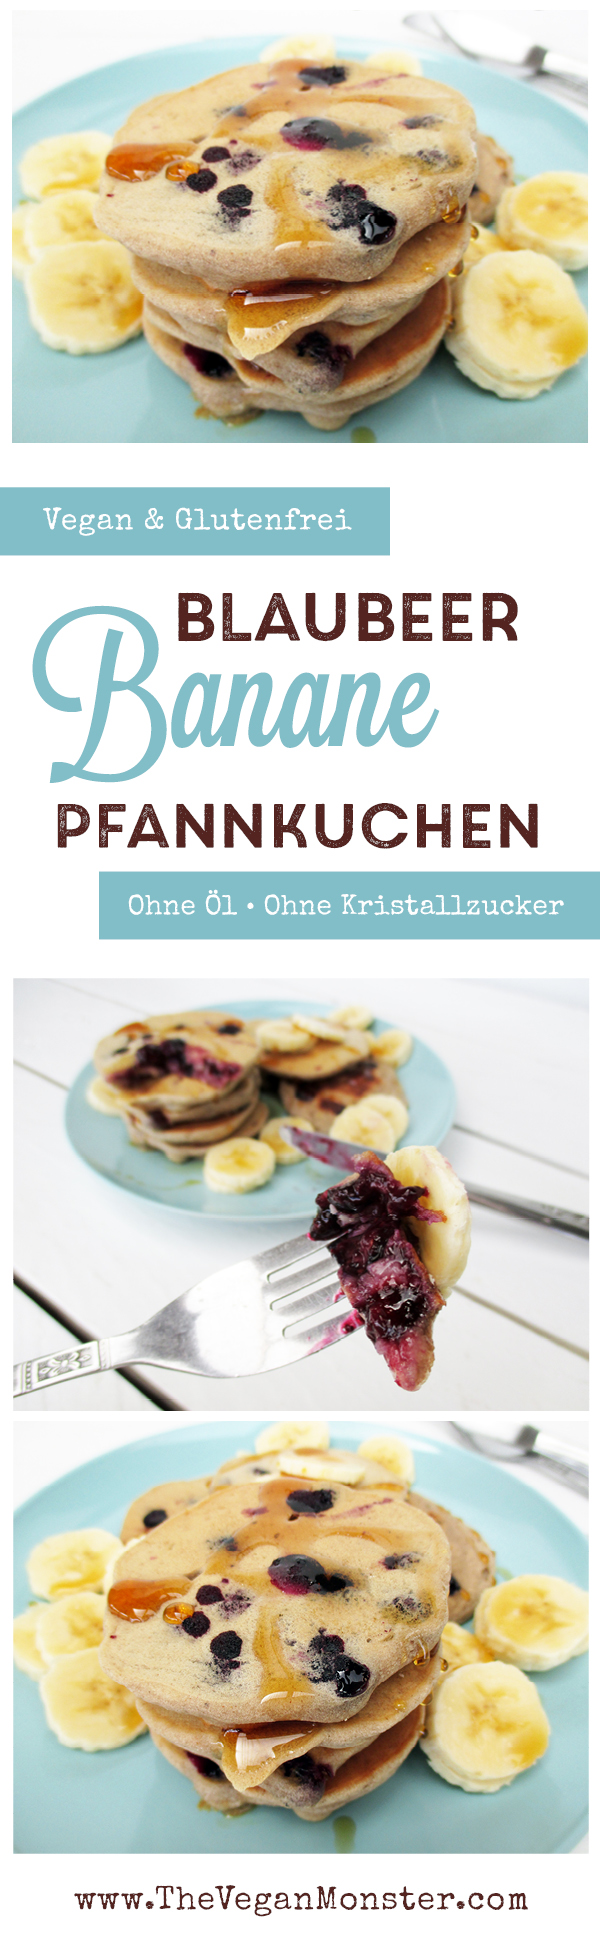 bananen blaubeer pfannkuchen vegan glutenfrei ohne zucker ohne l das vegan monster. Black Bedroom Furniture Sets. Home Design Ideas